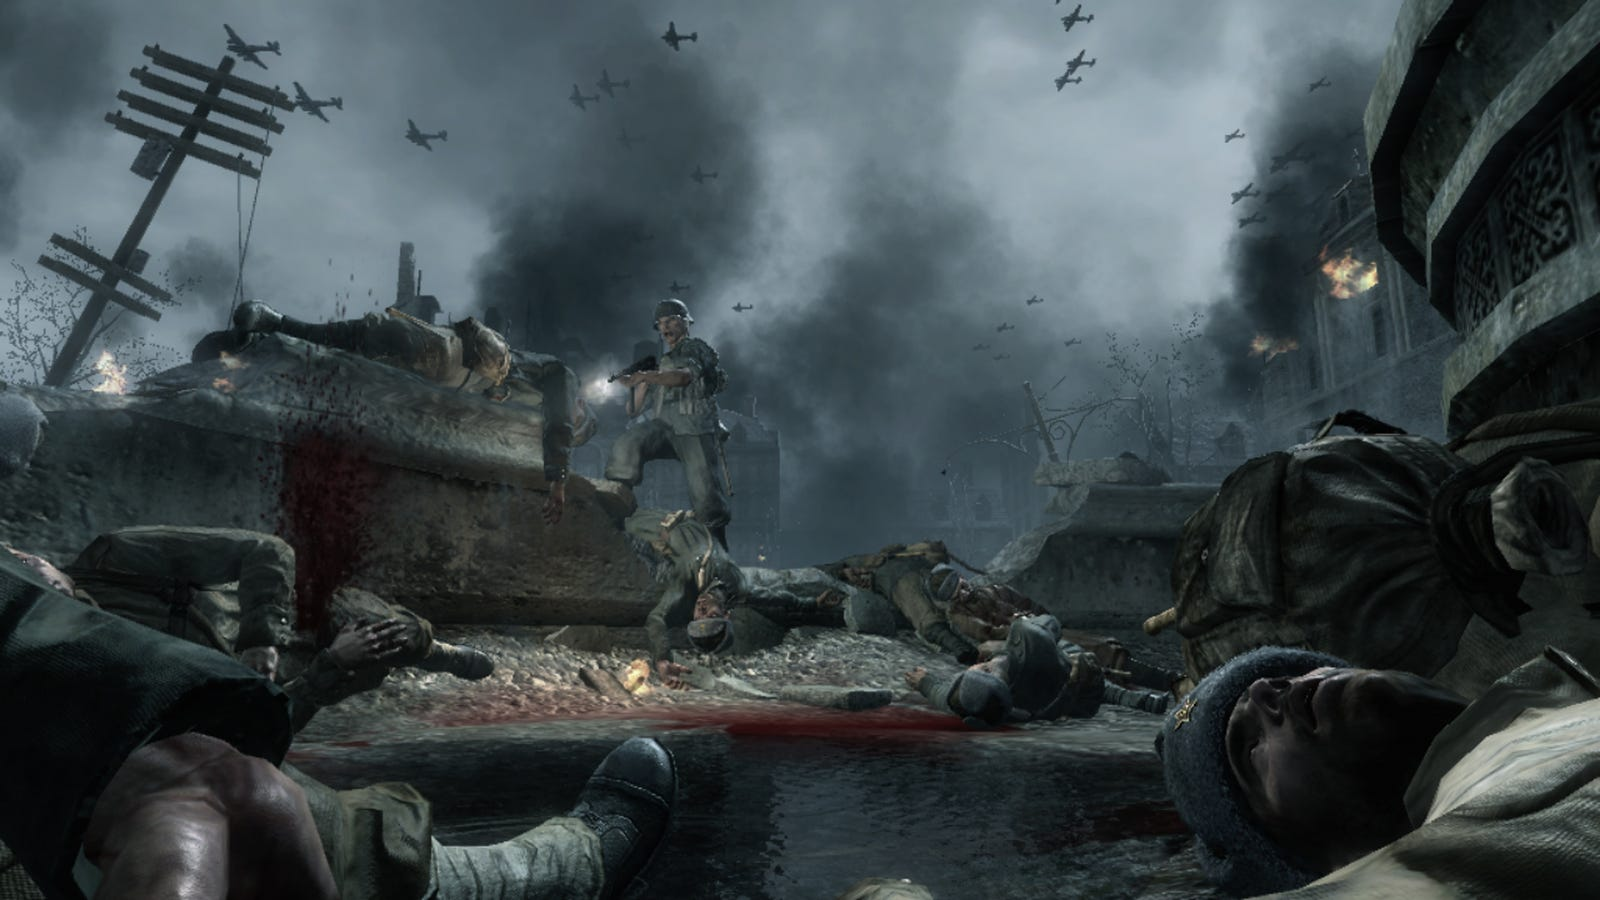 Hackers Aside, Call of Duty: World at War Is Still Gruesome Fun